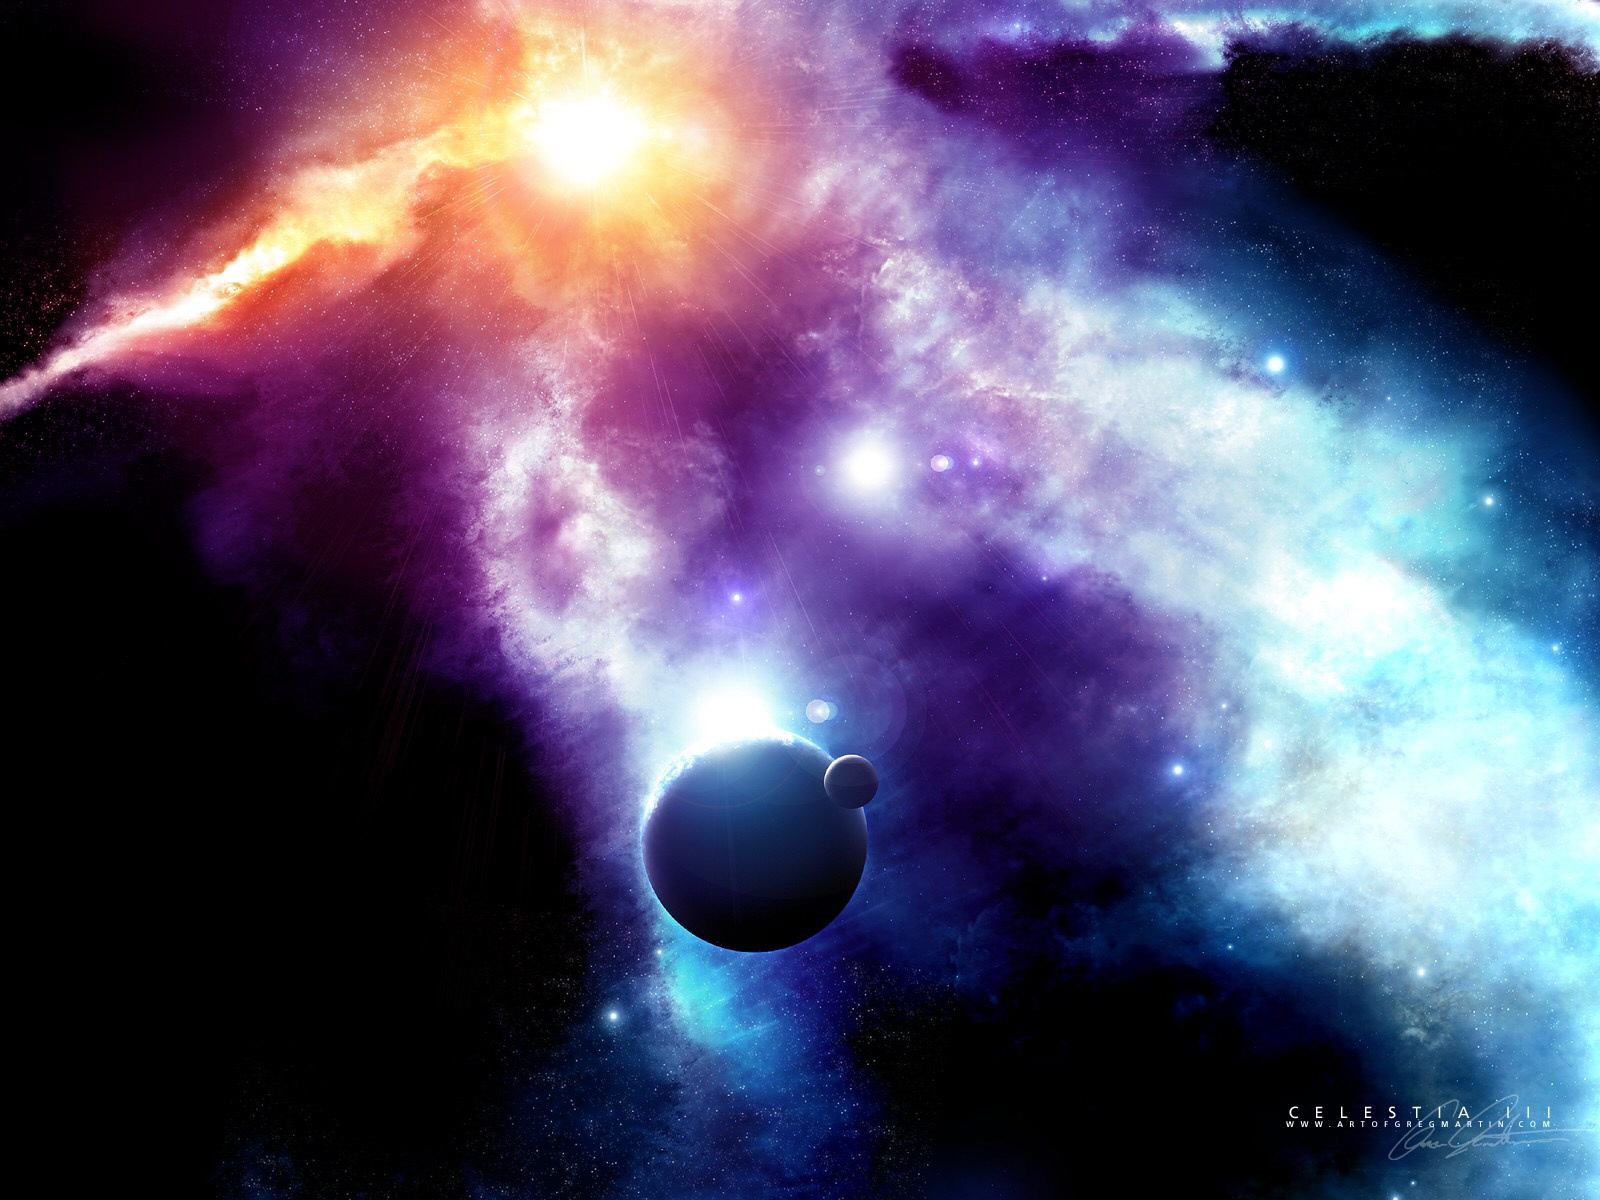 Amazing Space Wallpapers HD Wallpapers Backgrounds amazing spac 1600x1200